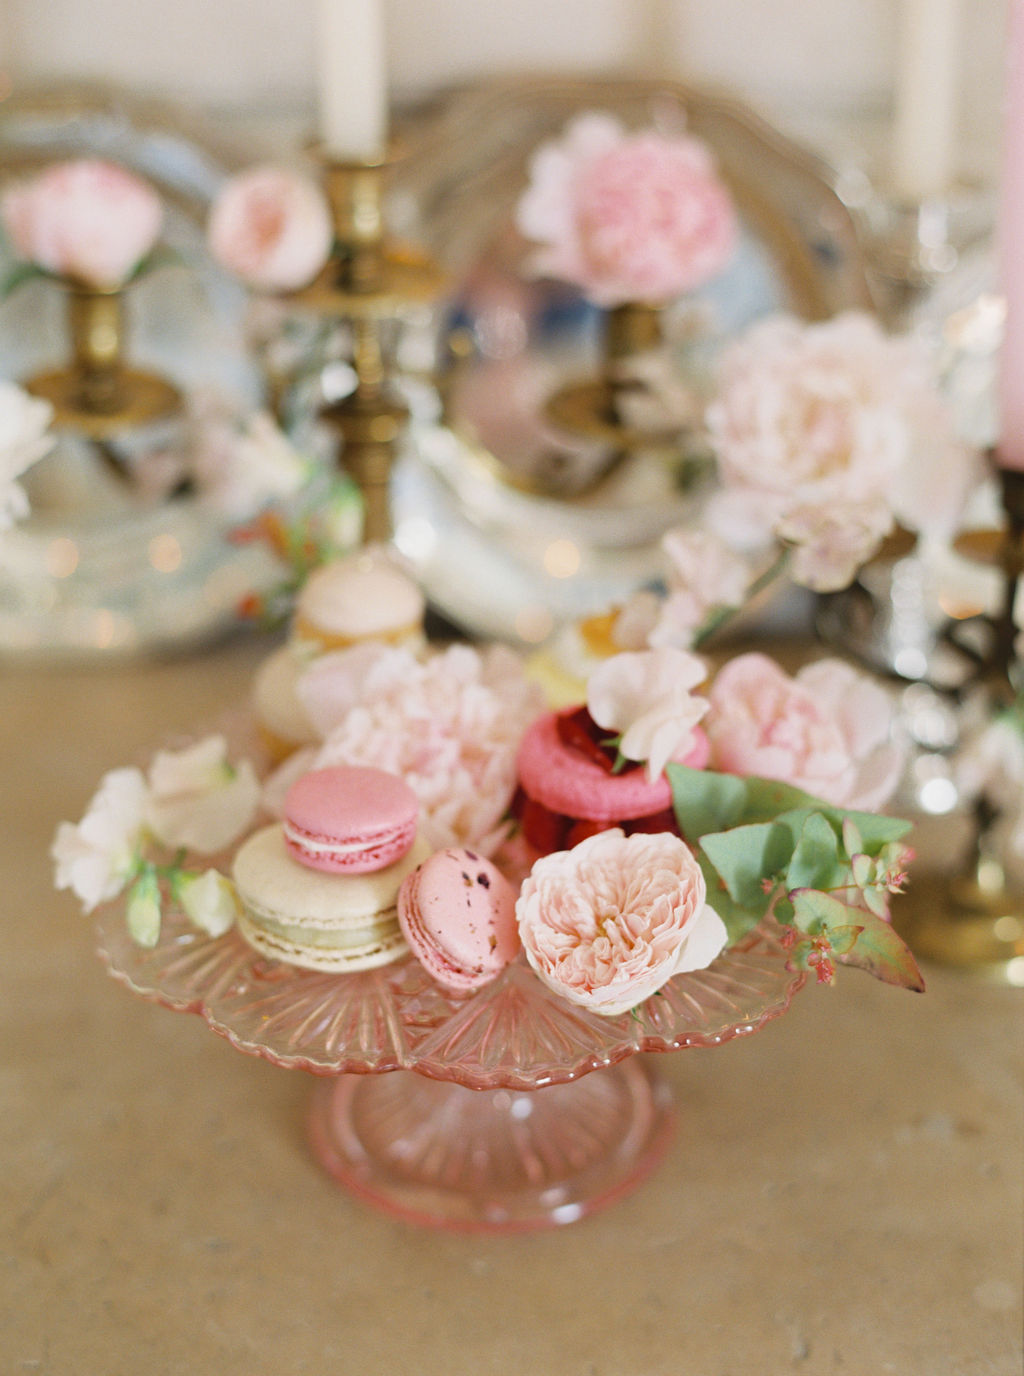 travellur_photoshoot_duchesse_de_villette_wedding_flowers_pastel.jpg